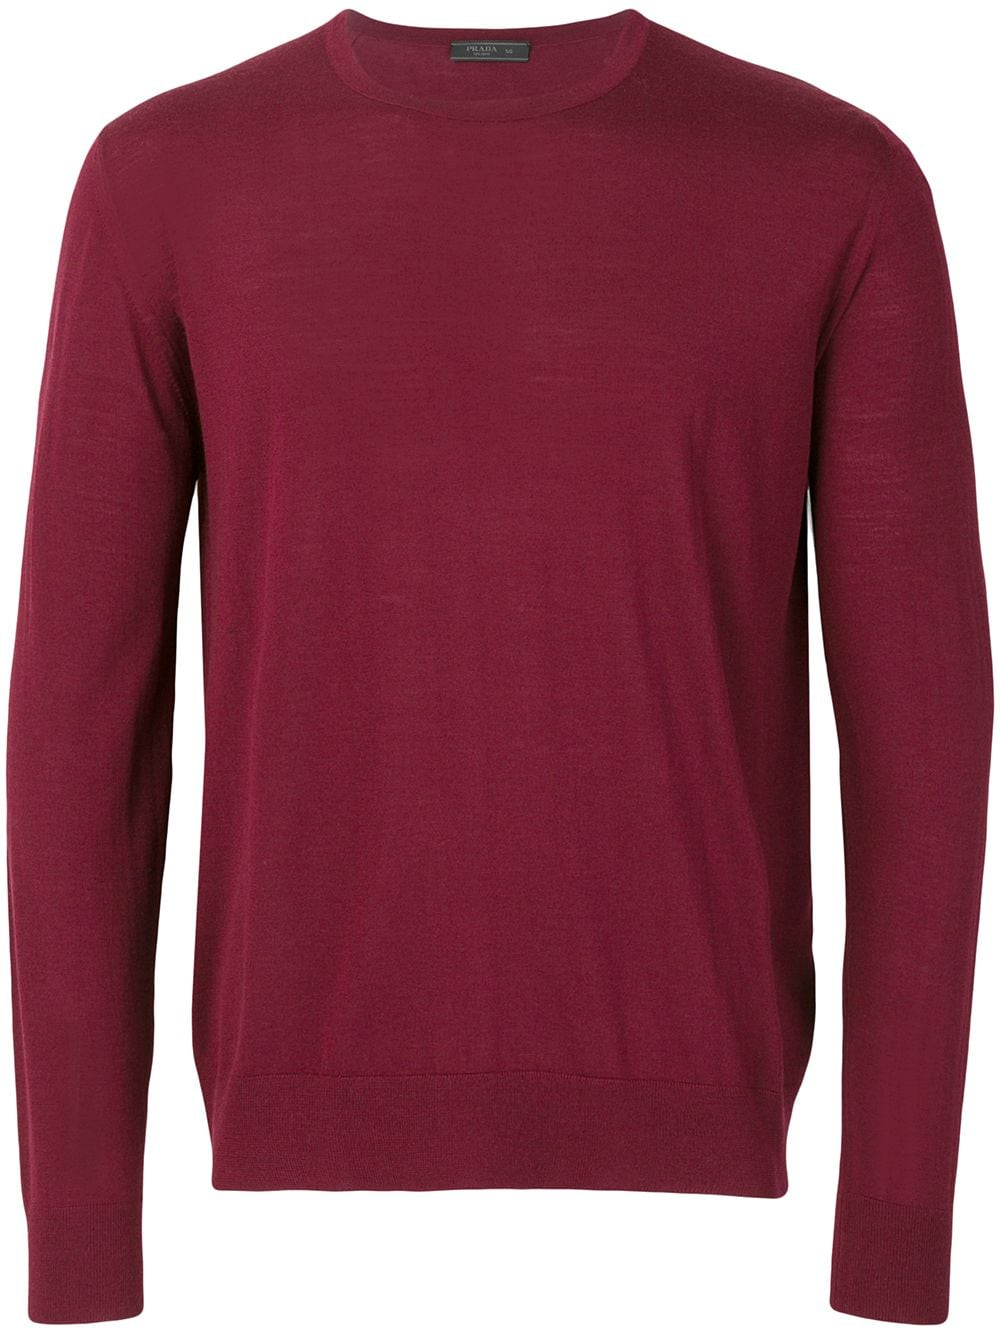 Prada crew neck jumper - Red von Prada